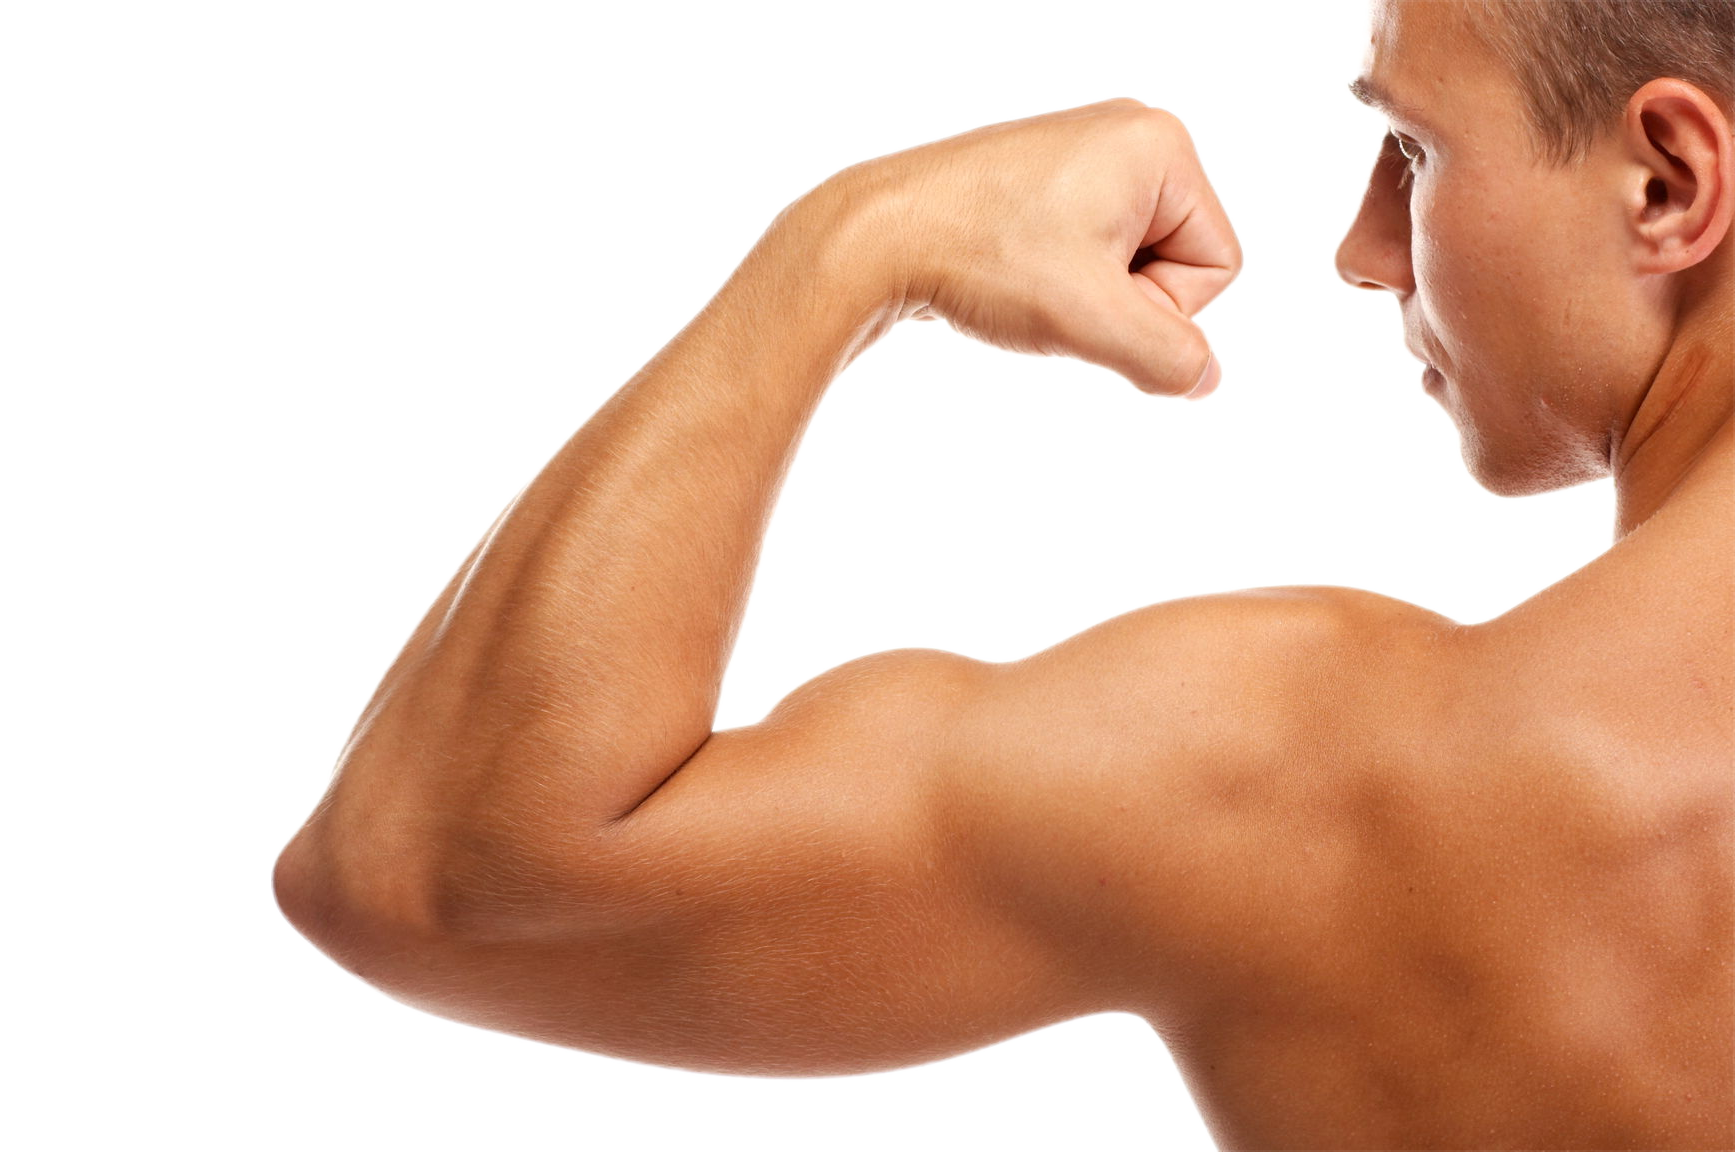 man flexing the muscles on his left arm with his back to the camera